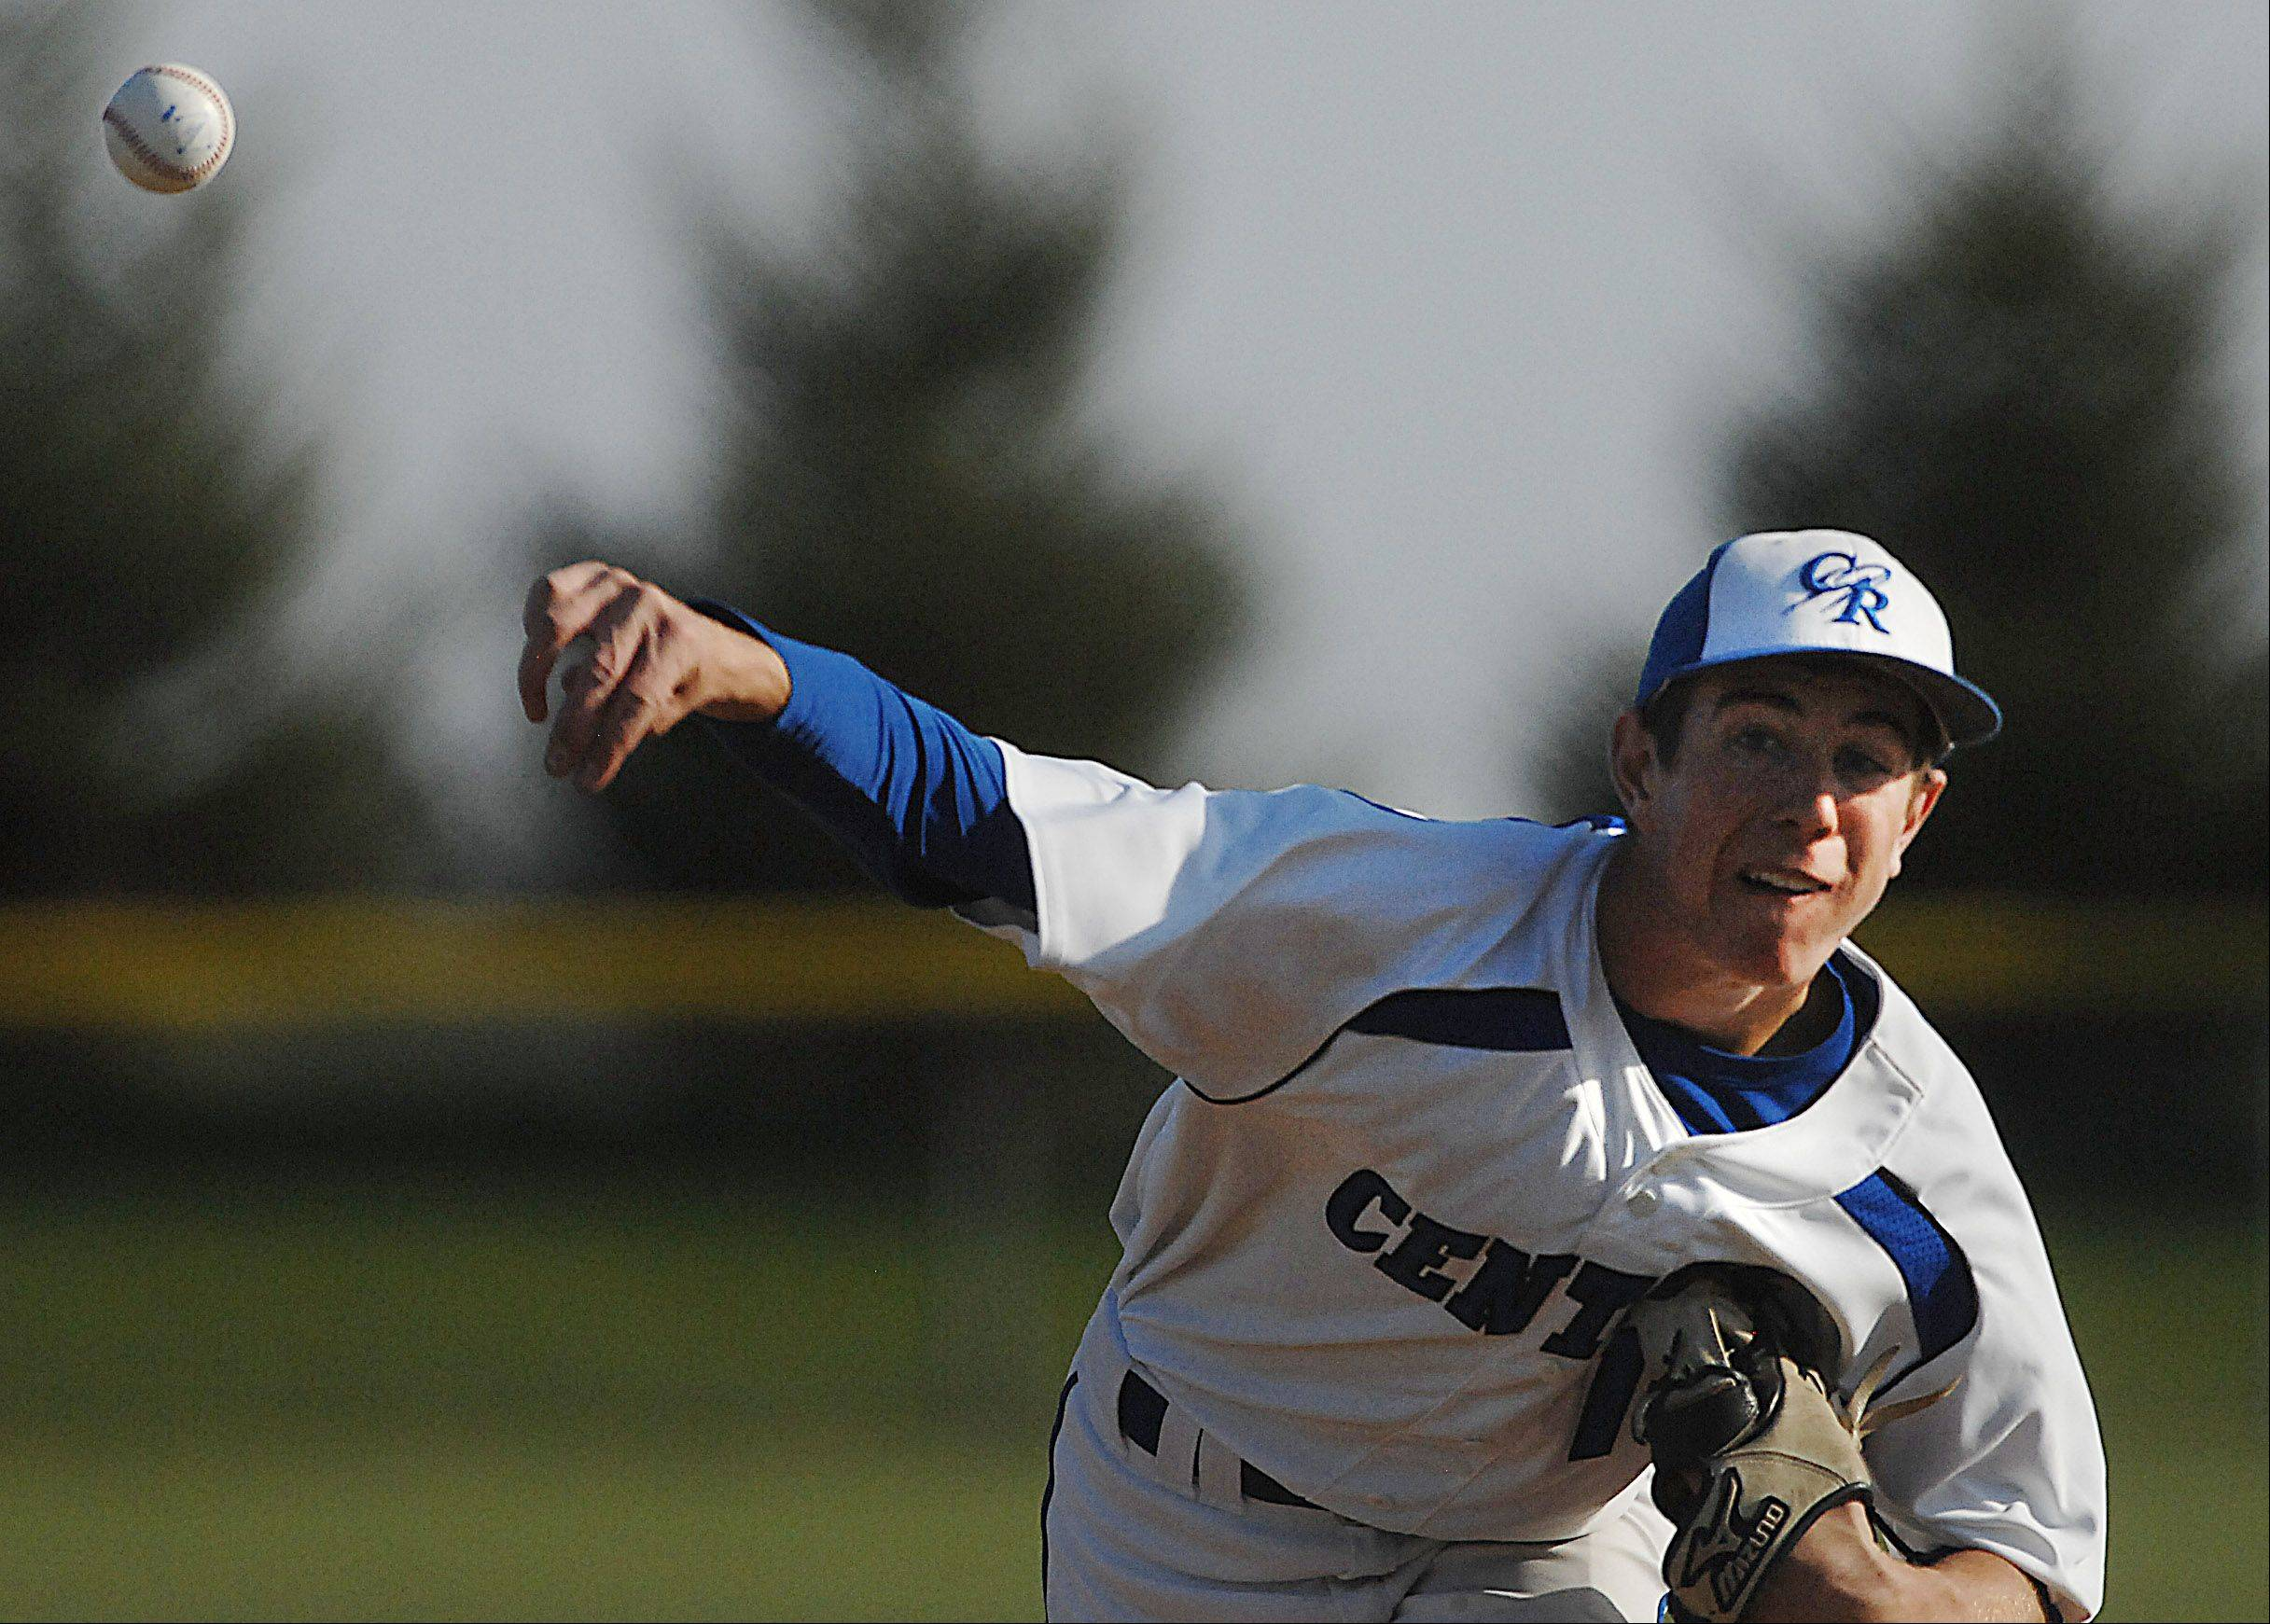 Burlington Central starting pitcher Riley Jensen struck out 11 Marengo batters Thursday in Burlington.